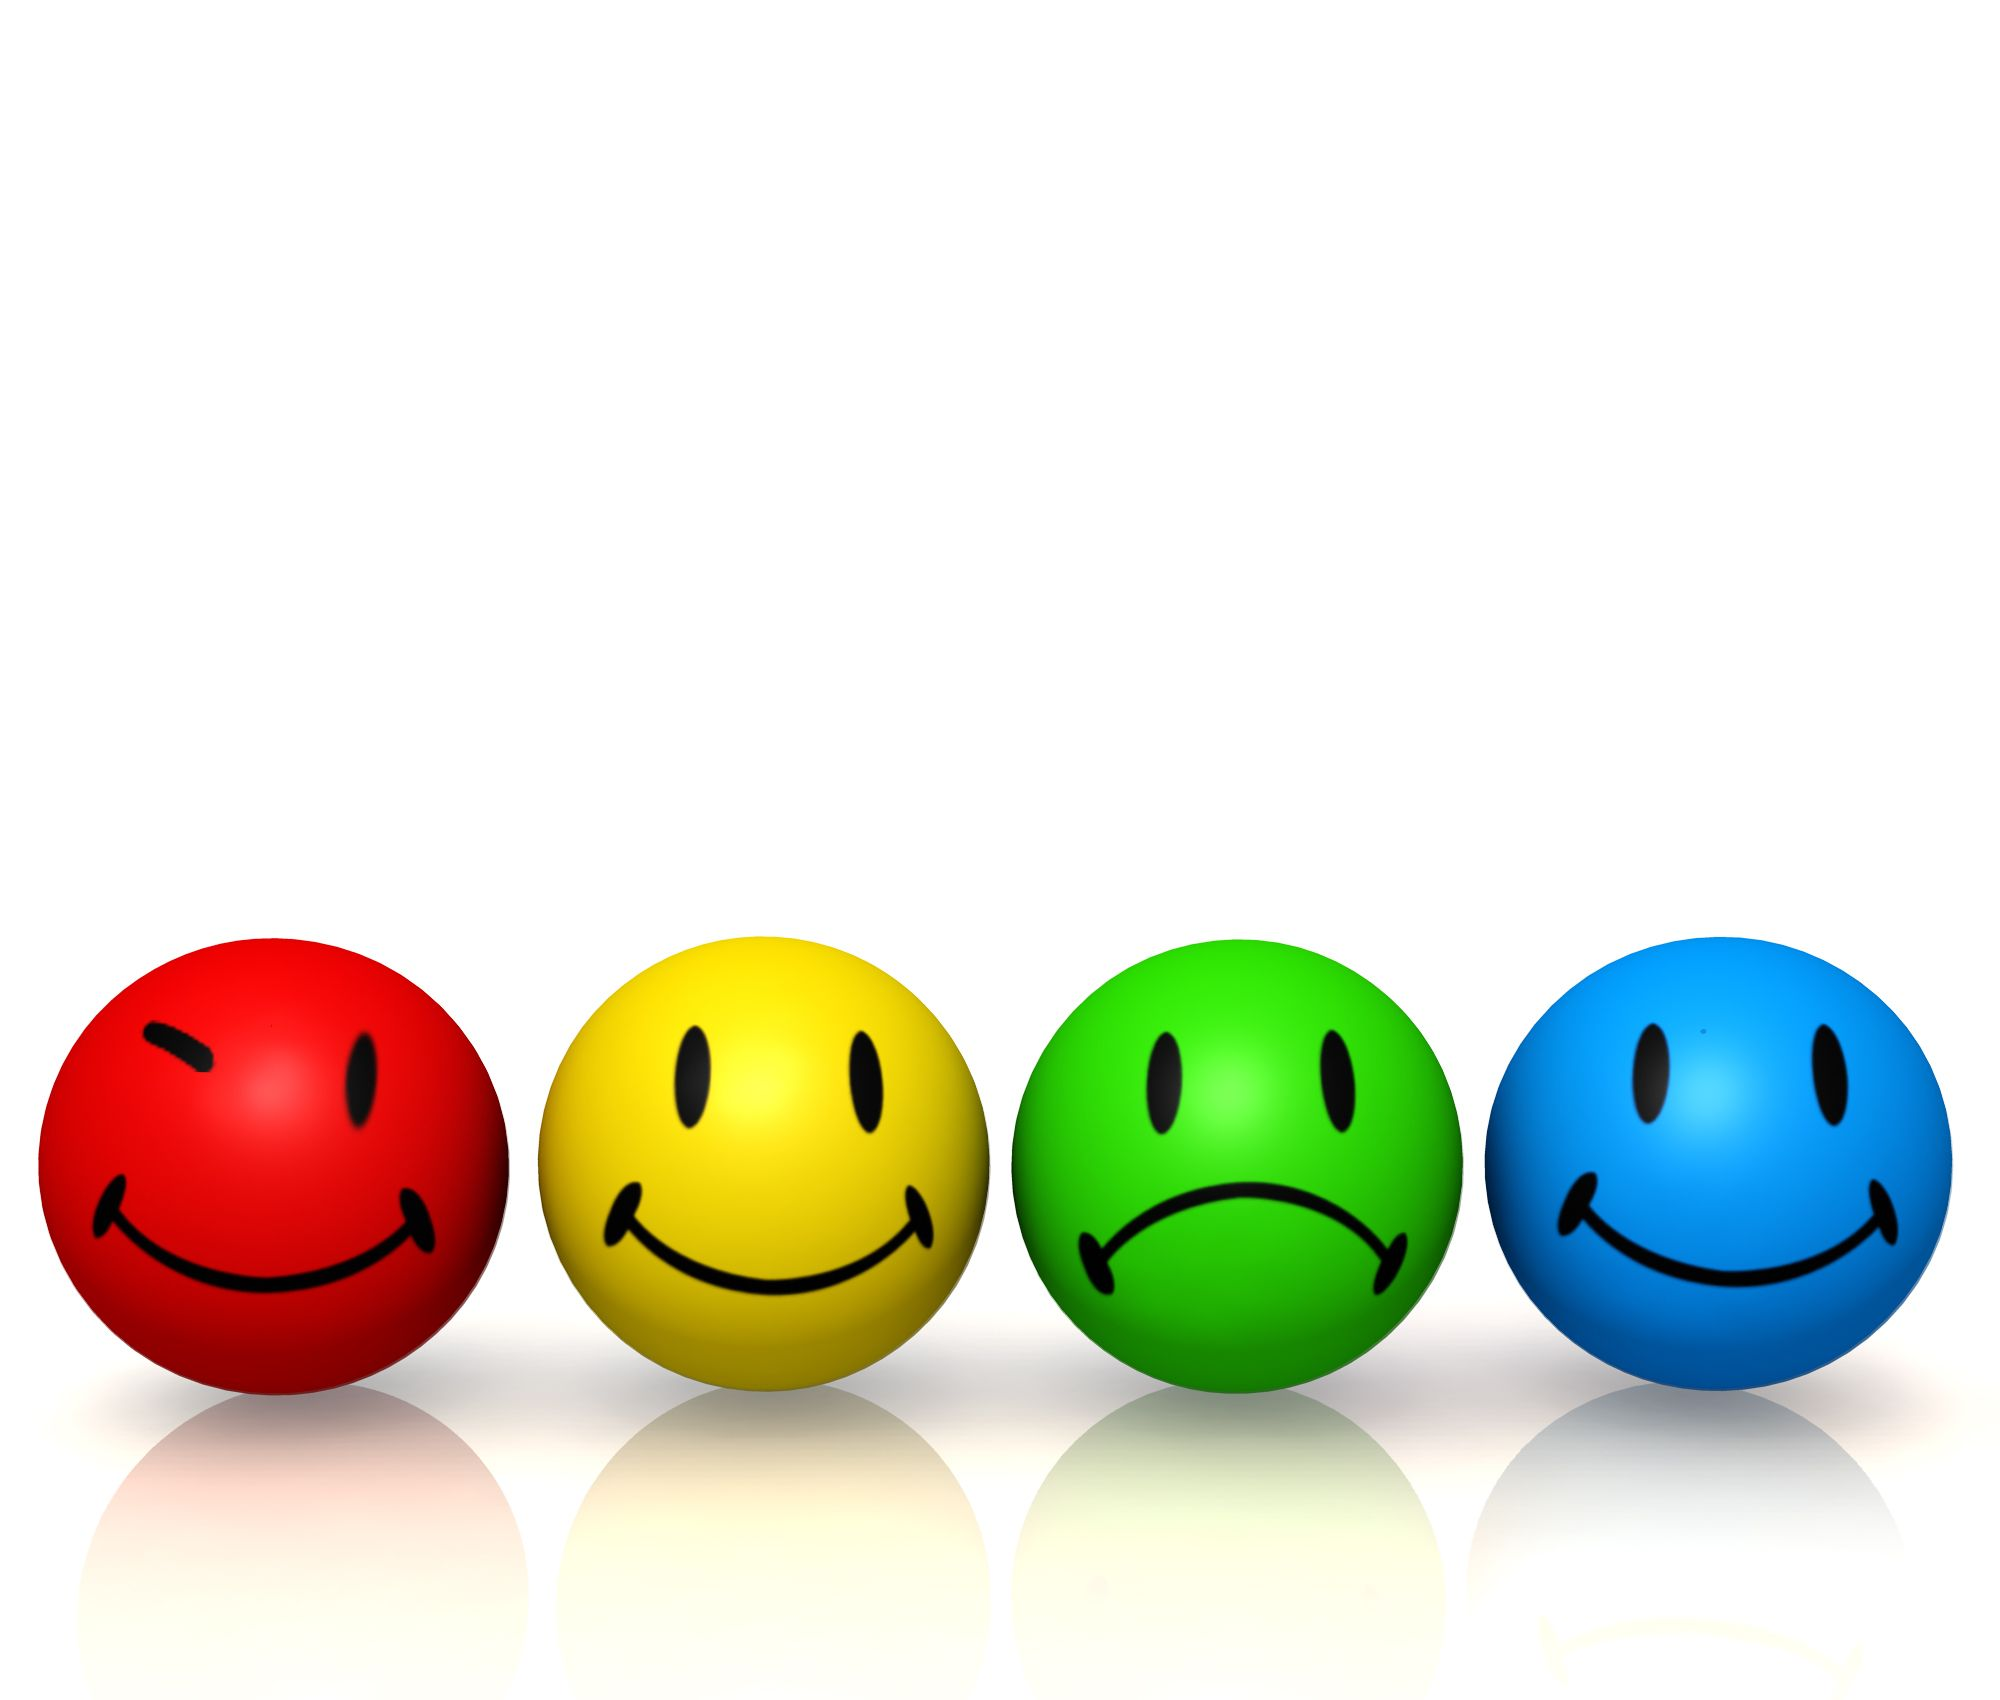 20 Emotion Colorful Smileys In Line Image Graphic Stock Photo ...